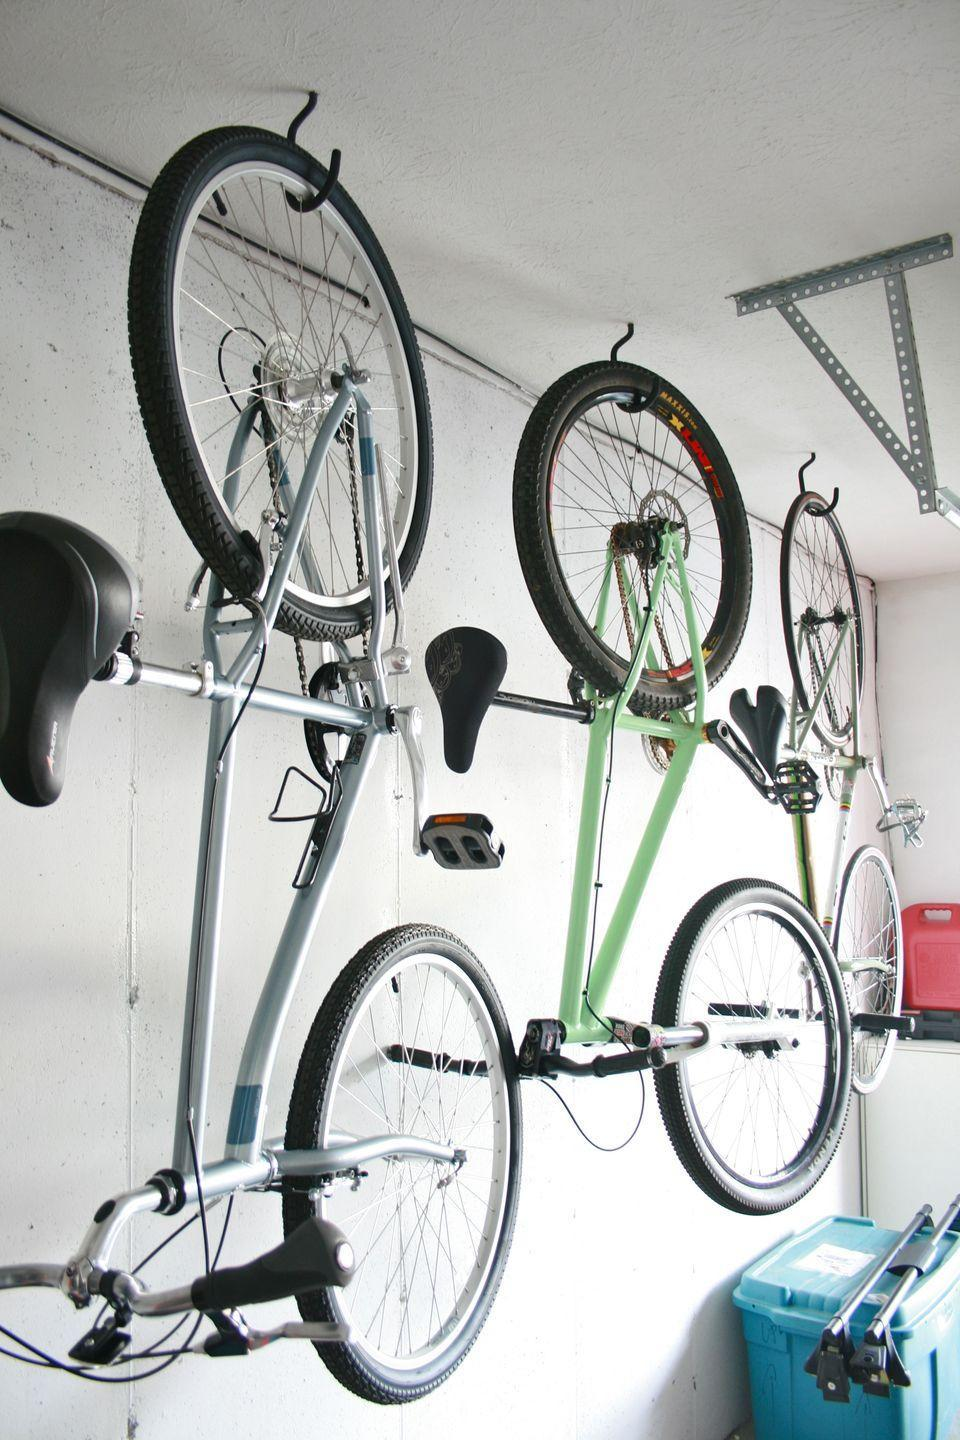 """<p>There are perhaps no other items that make a mess out of garages the way bicycles do. Get them off the floor and out of your way by hanging bike hooks from your ceiling. Just make sure you screw the hook into a stud for maximum strength.</p><p><strong>Get the tutorial at <a href=""""https://www.dreamgreendiy.com/2012/11/30/hang-bikes-in-the-garage-check/"""" rel=""""nofollow noopener"""" target=""""_blank"""" data-ylk=""""slk:Dream Green DIY"""" class=""""link rapid-noclick-resp"""">Dream Green DIY</a>.</strong></p><p><a class=""""link rapid-noclick-resp"""" href=""""https://www.amazon.com/Impresa-Products-4-Pack-Bike-Hanger/dp/B01CZ7WZ08/ref=sr_1_3_sspa?tag=syn-yahoo-20&ascsubtag=%5Bartid%7C10050.g.36449426%5Bsrc%7Cyahoo-us"""" rel=""""nofollow noopener"""" target=""""_blank"""" data-ylk=""""slk:SHOP BIKE HOOKS"""">SHOP BIKE HOOKS</a><br></p>"""